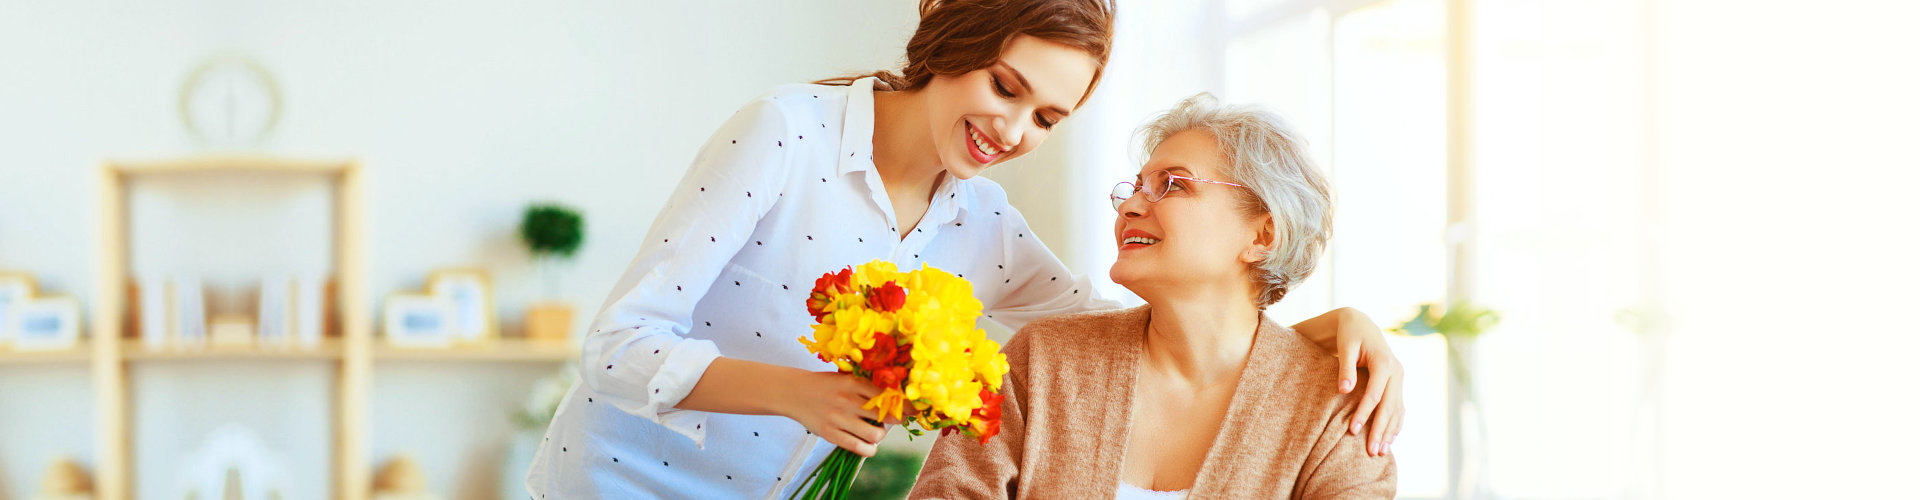 caregiver giving flowers to her senior patient